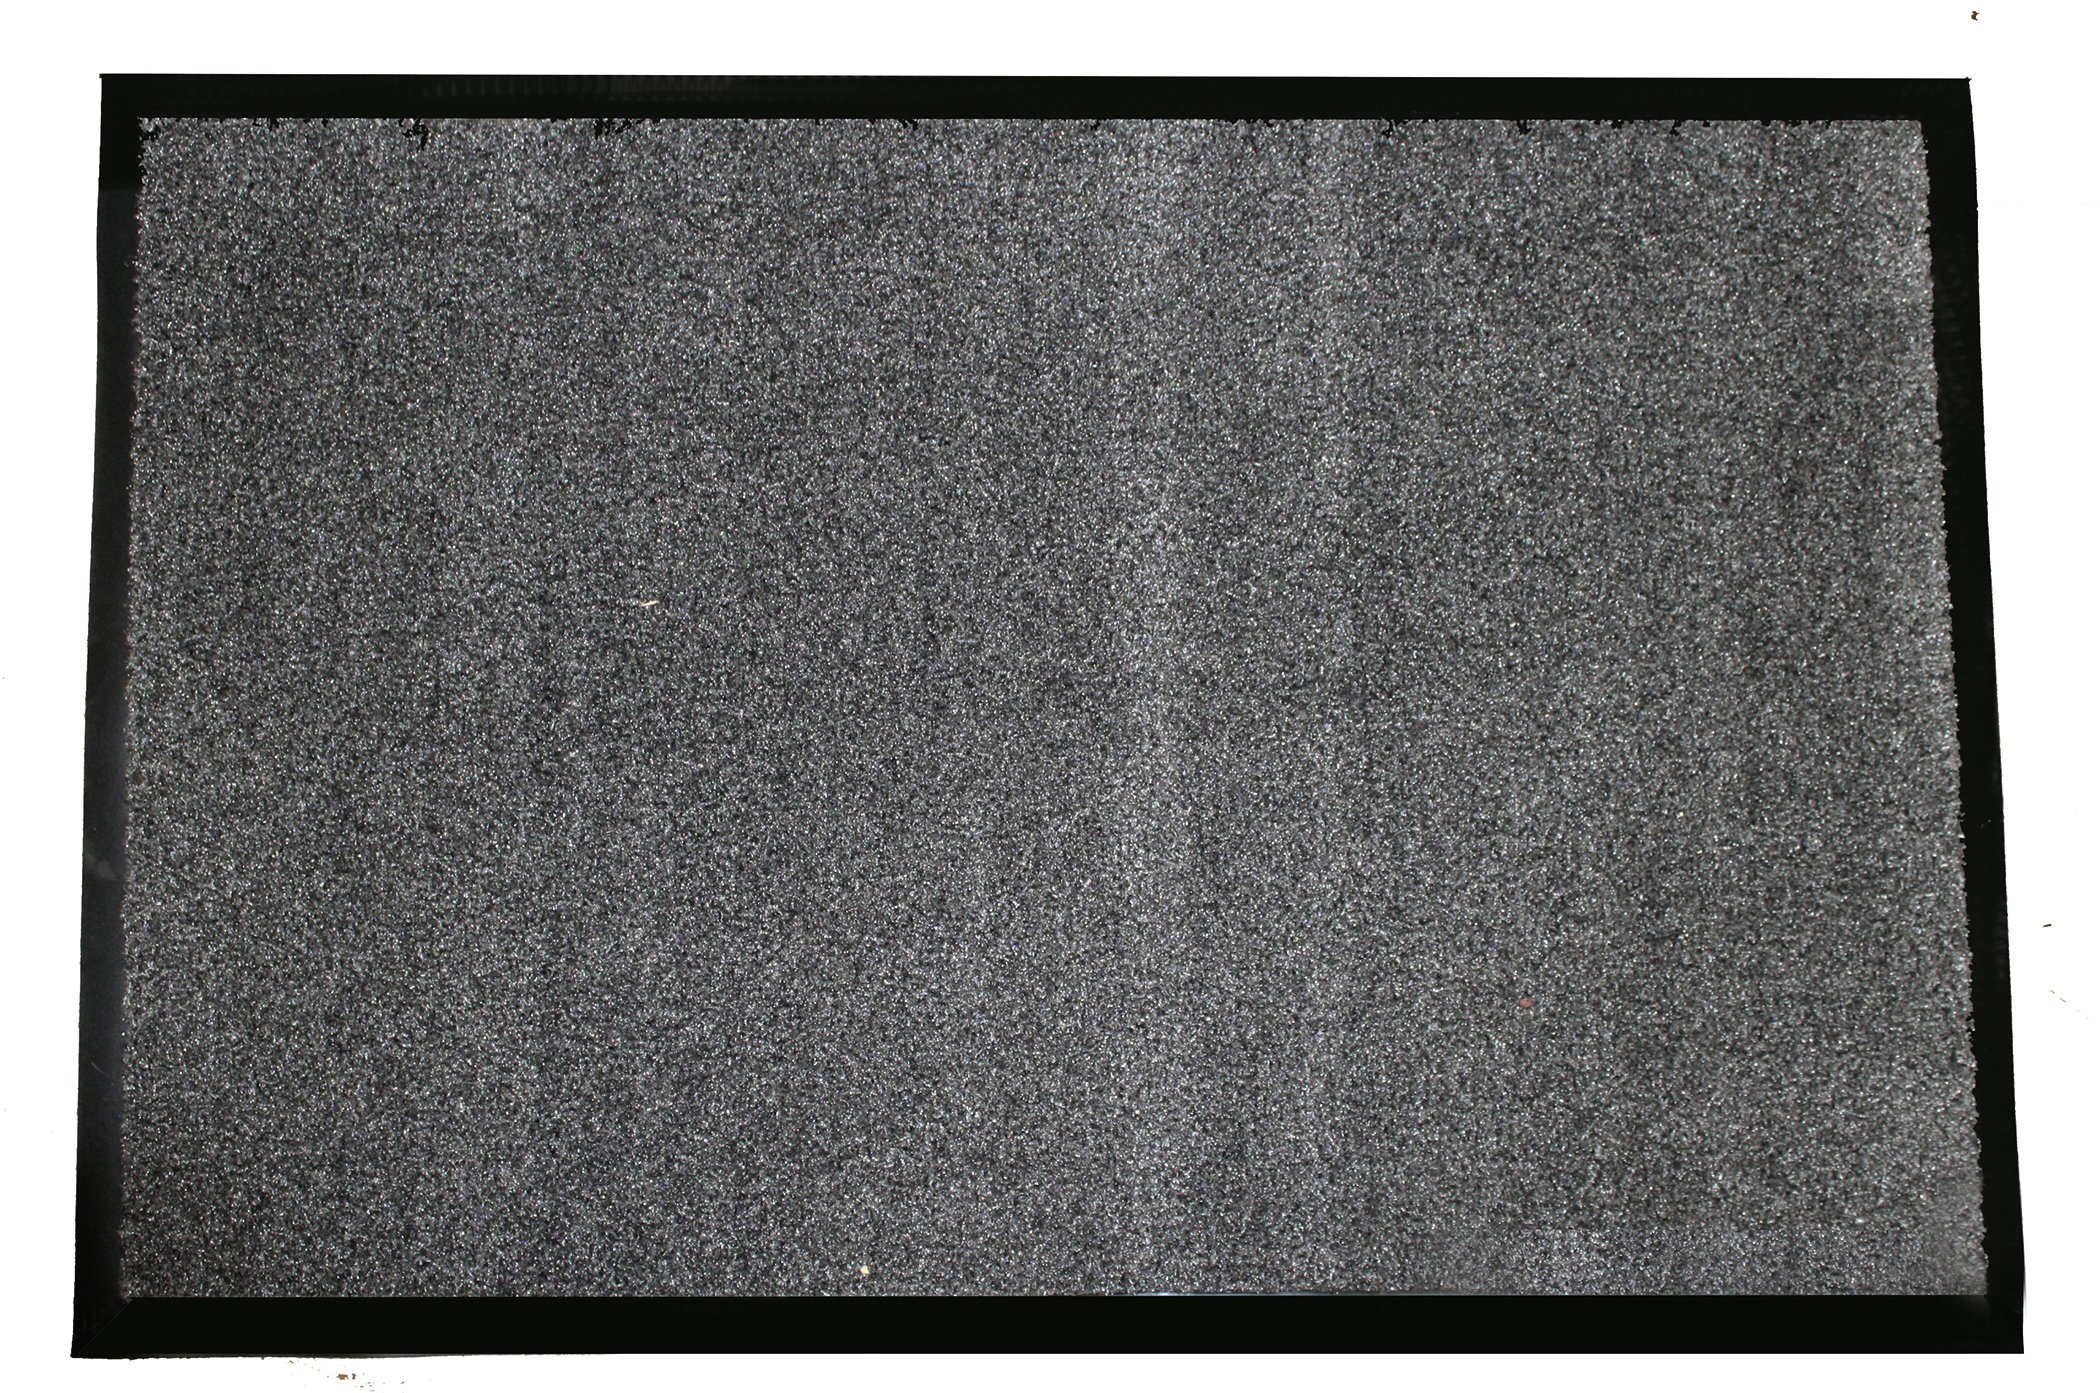 Durable Wipe-N-Walk Vinyl Backed Indoor Carpet Entrance Mat, 3' x 5', Charcoal